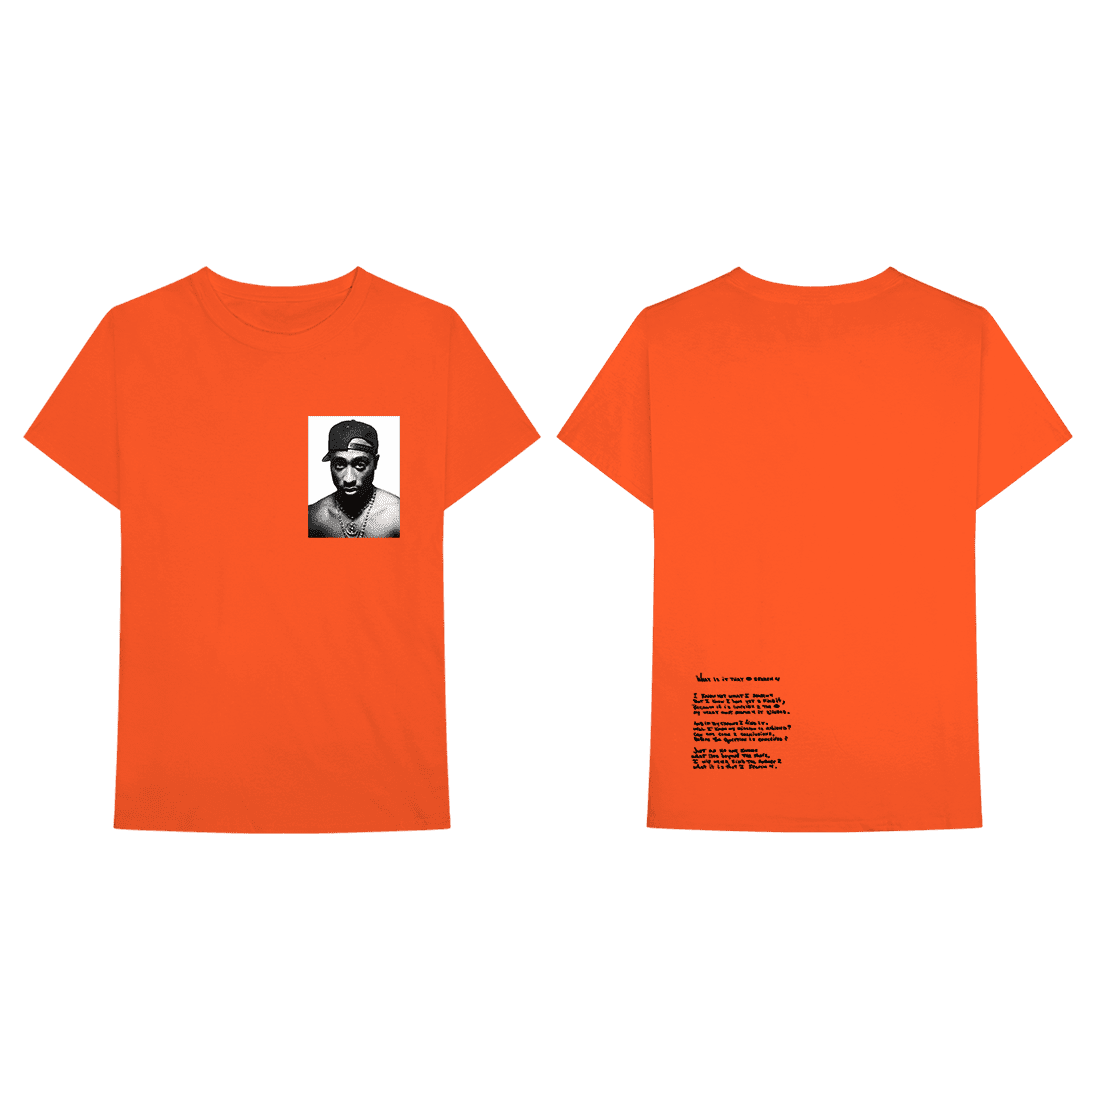 tupac poetry month competition merch bundle